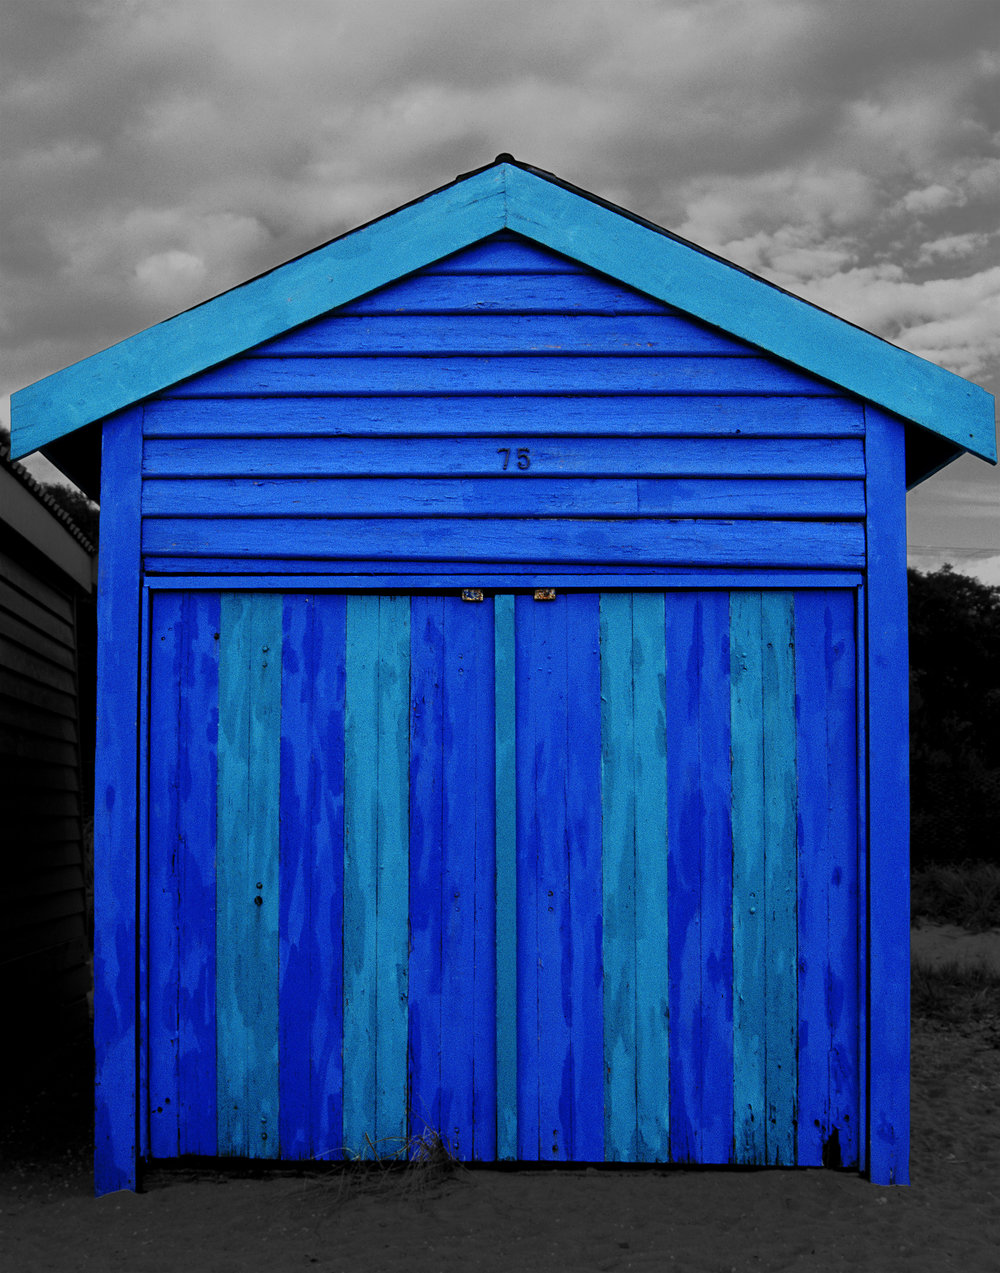 Judy Gelles,  Beach Box No. 75 , 2003  Digital pigment print, 8 x 10 in, edition of 20; 11 x 14 in, edition of 25; 16 x 20 in, edition of 25   Inquire